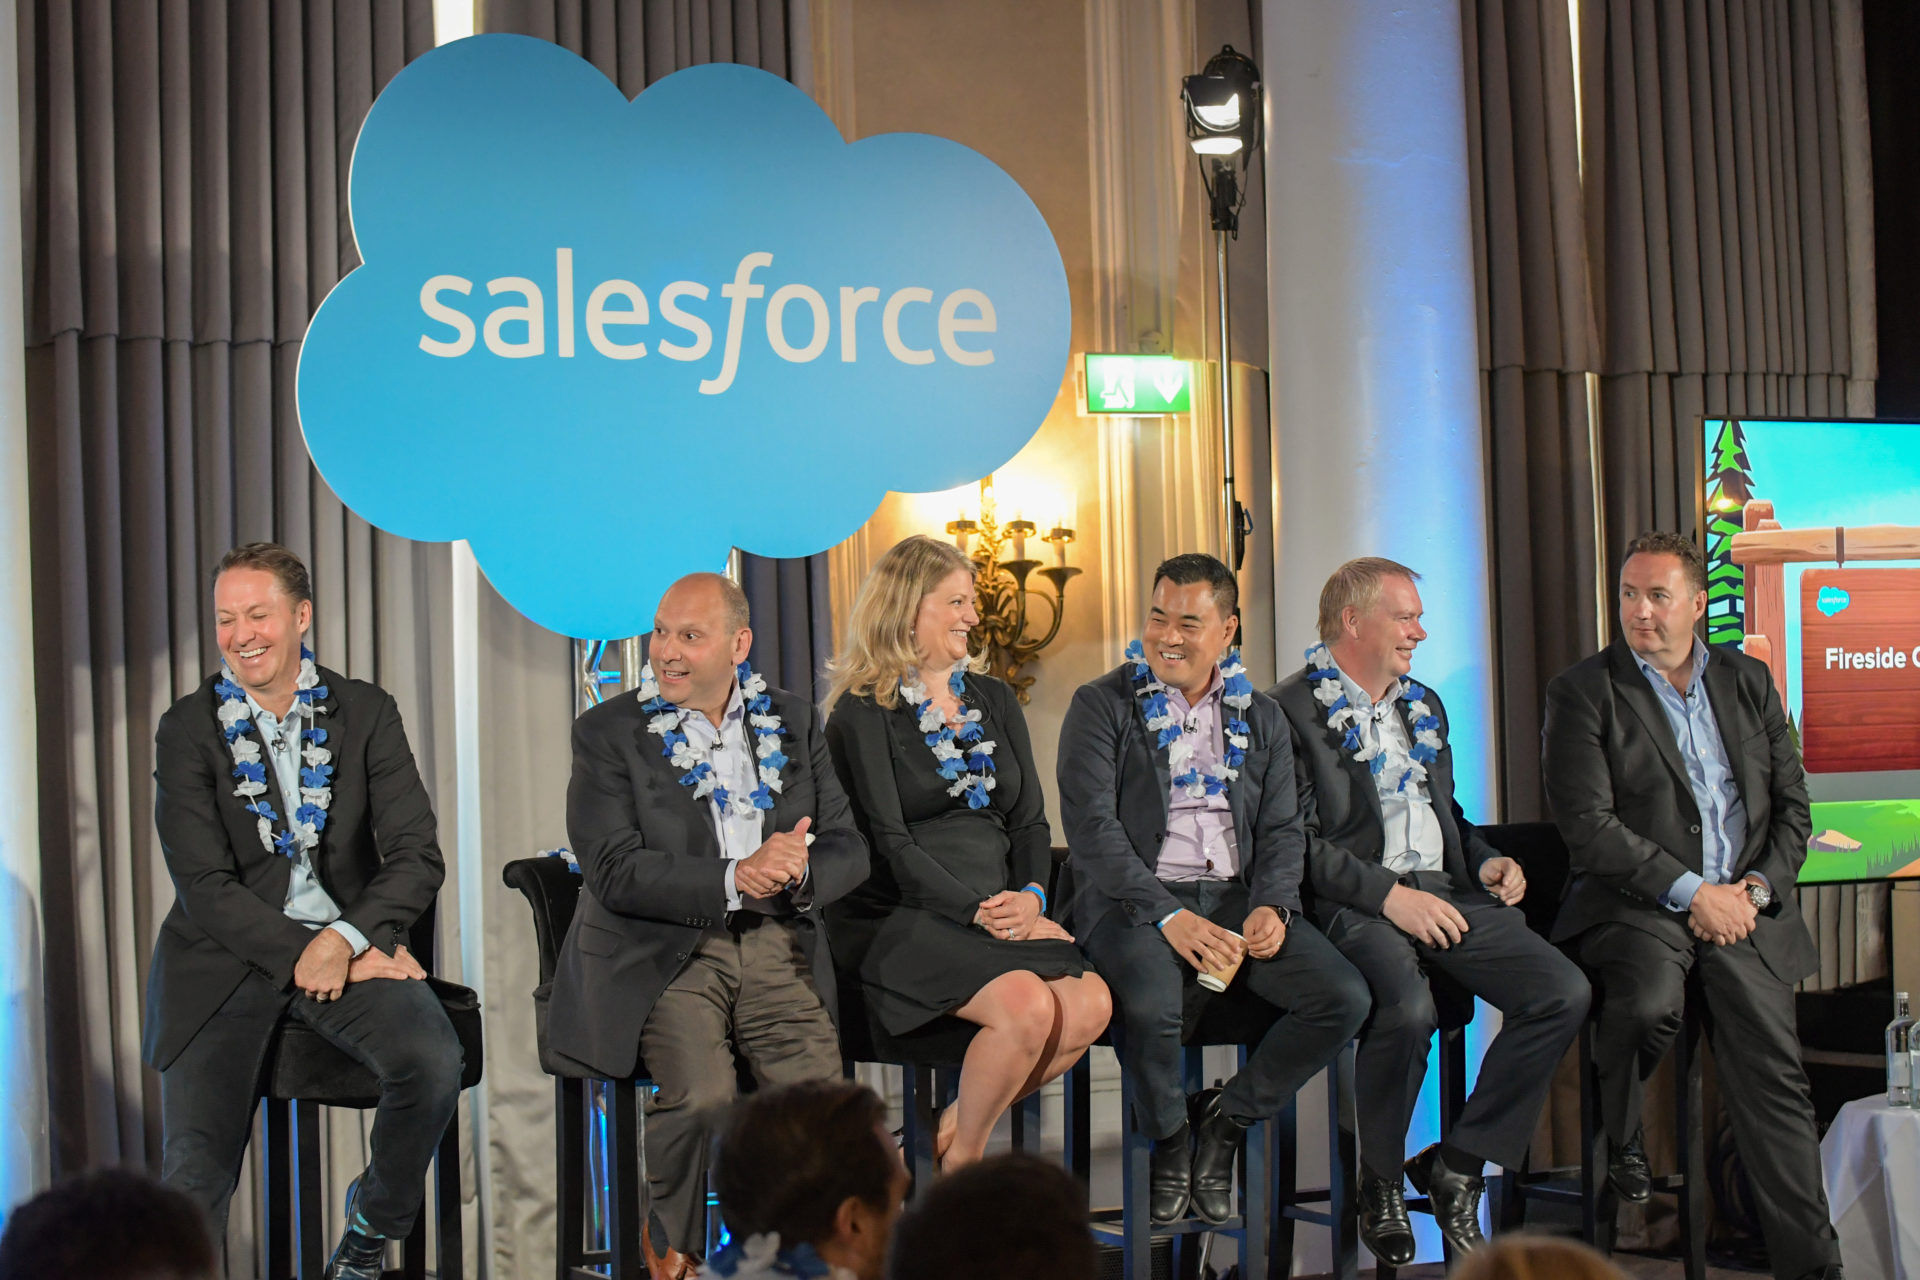 OHM-Salesforce-London-Top Selects-8168.jpg